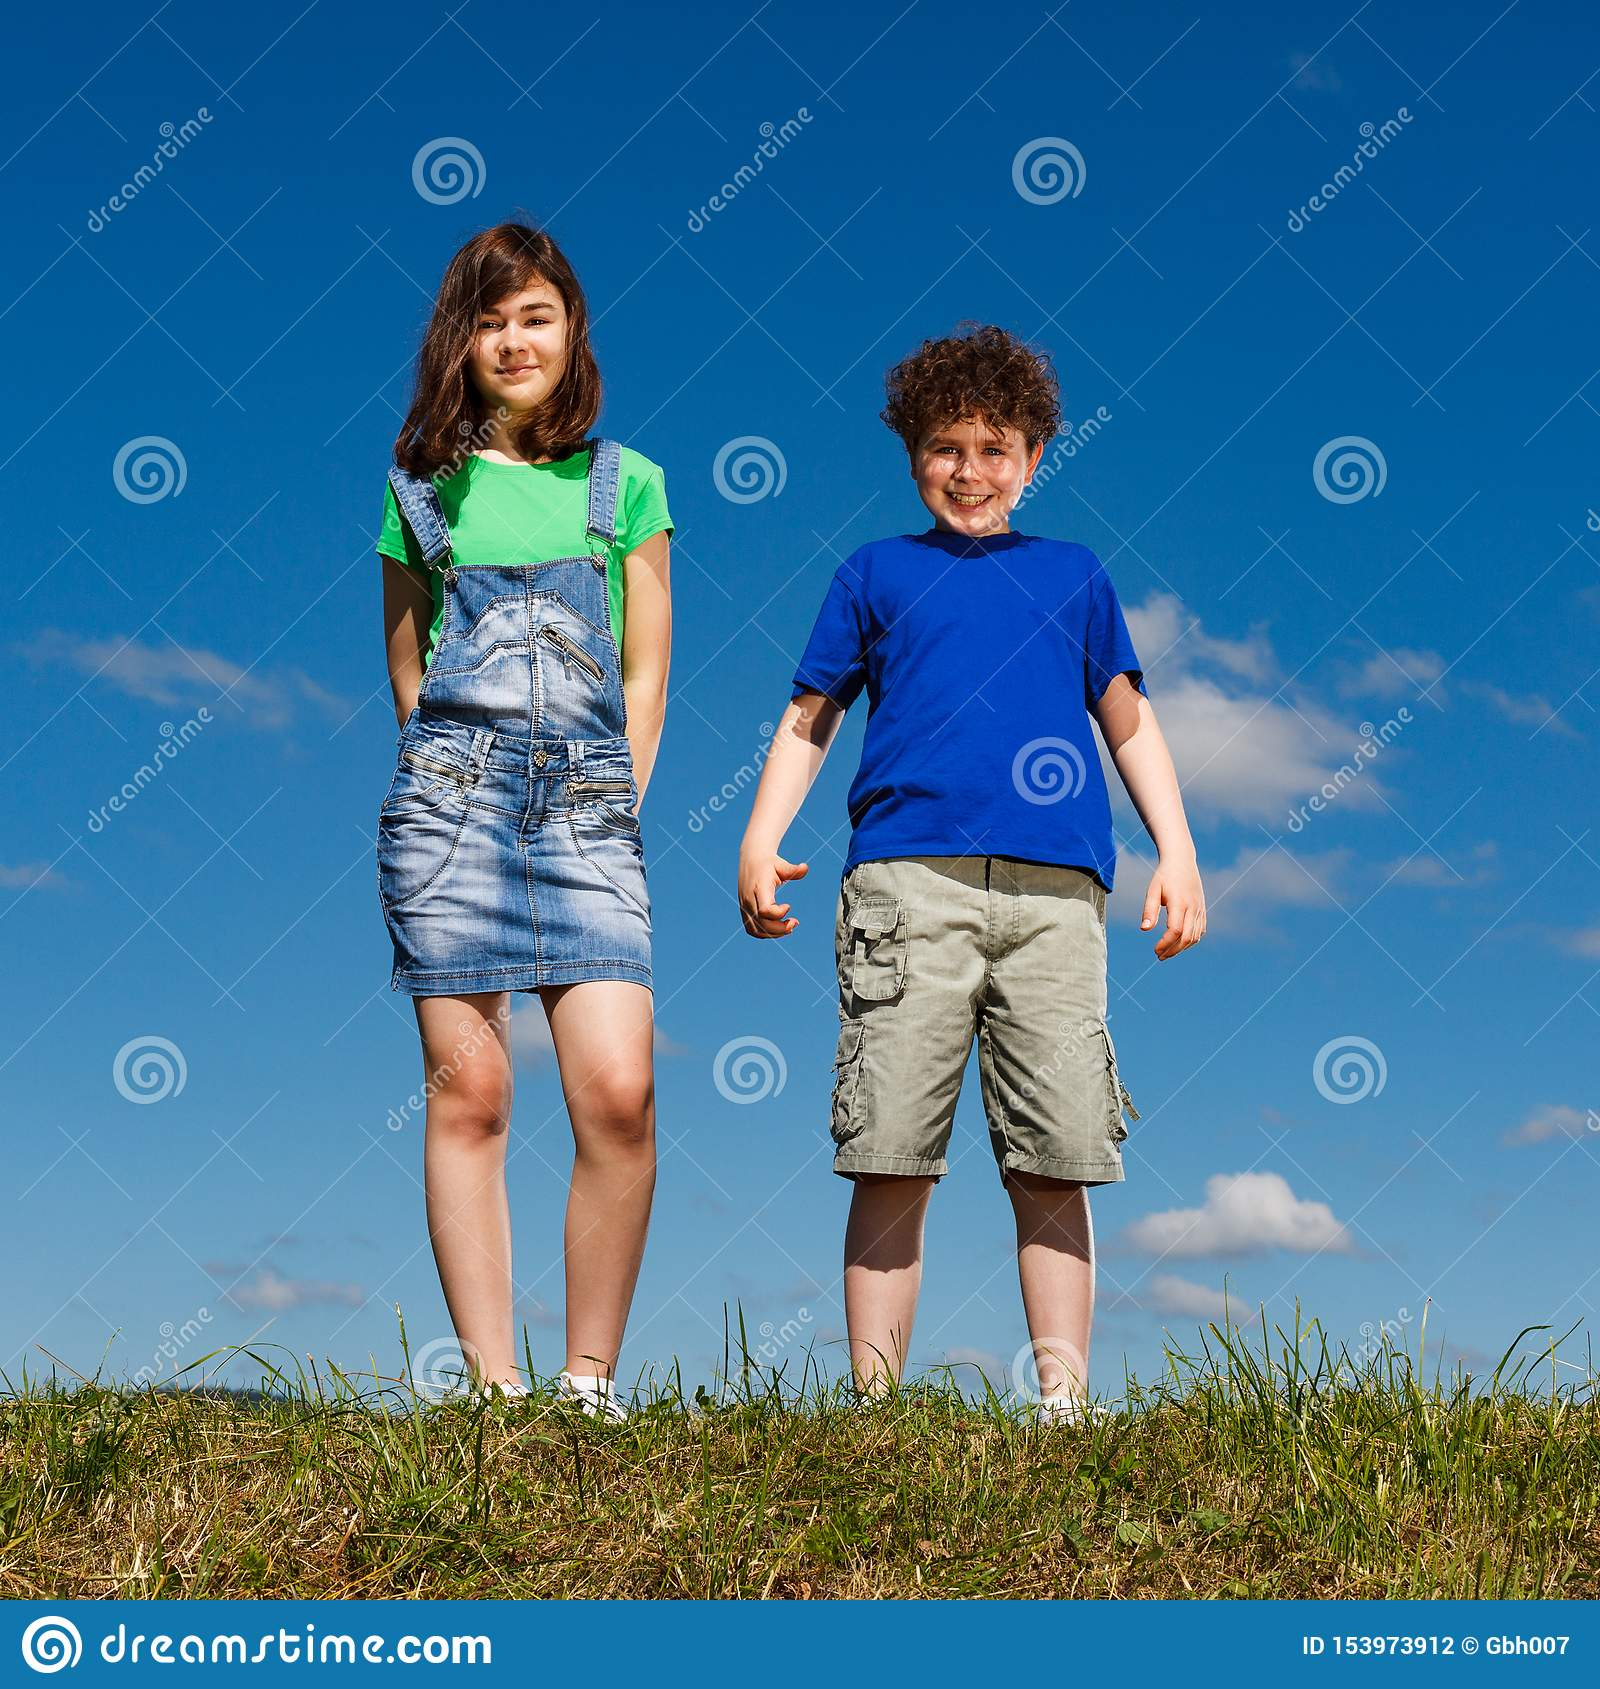 Girl and boy standing outdoor